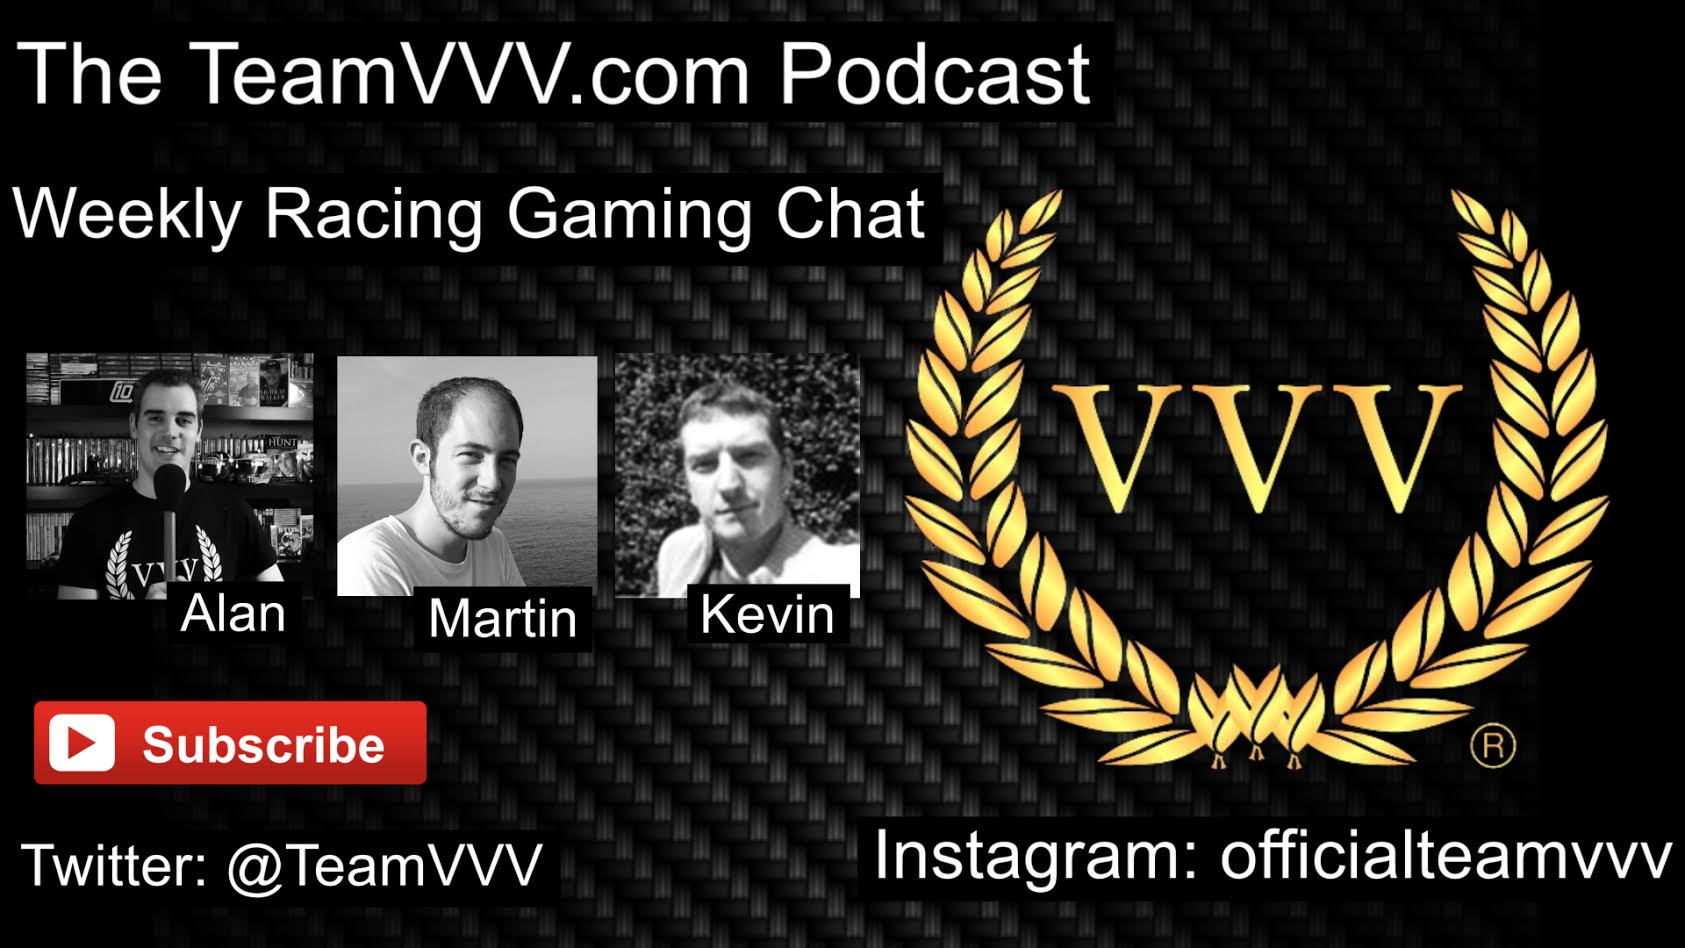 The TeamVVV Podcast Episode 1: Top Gear, GT Sport and more